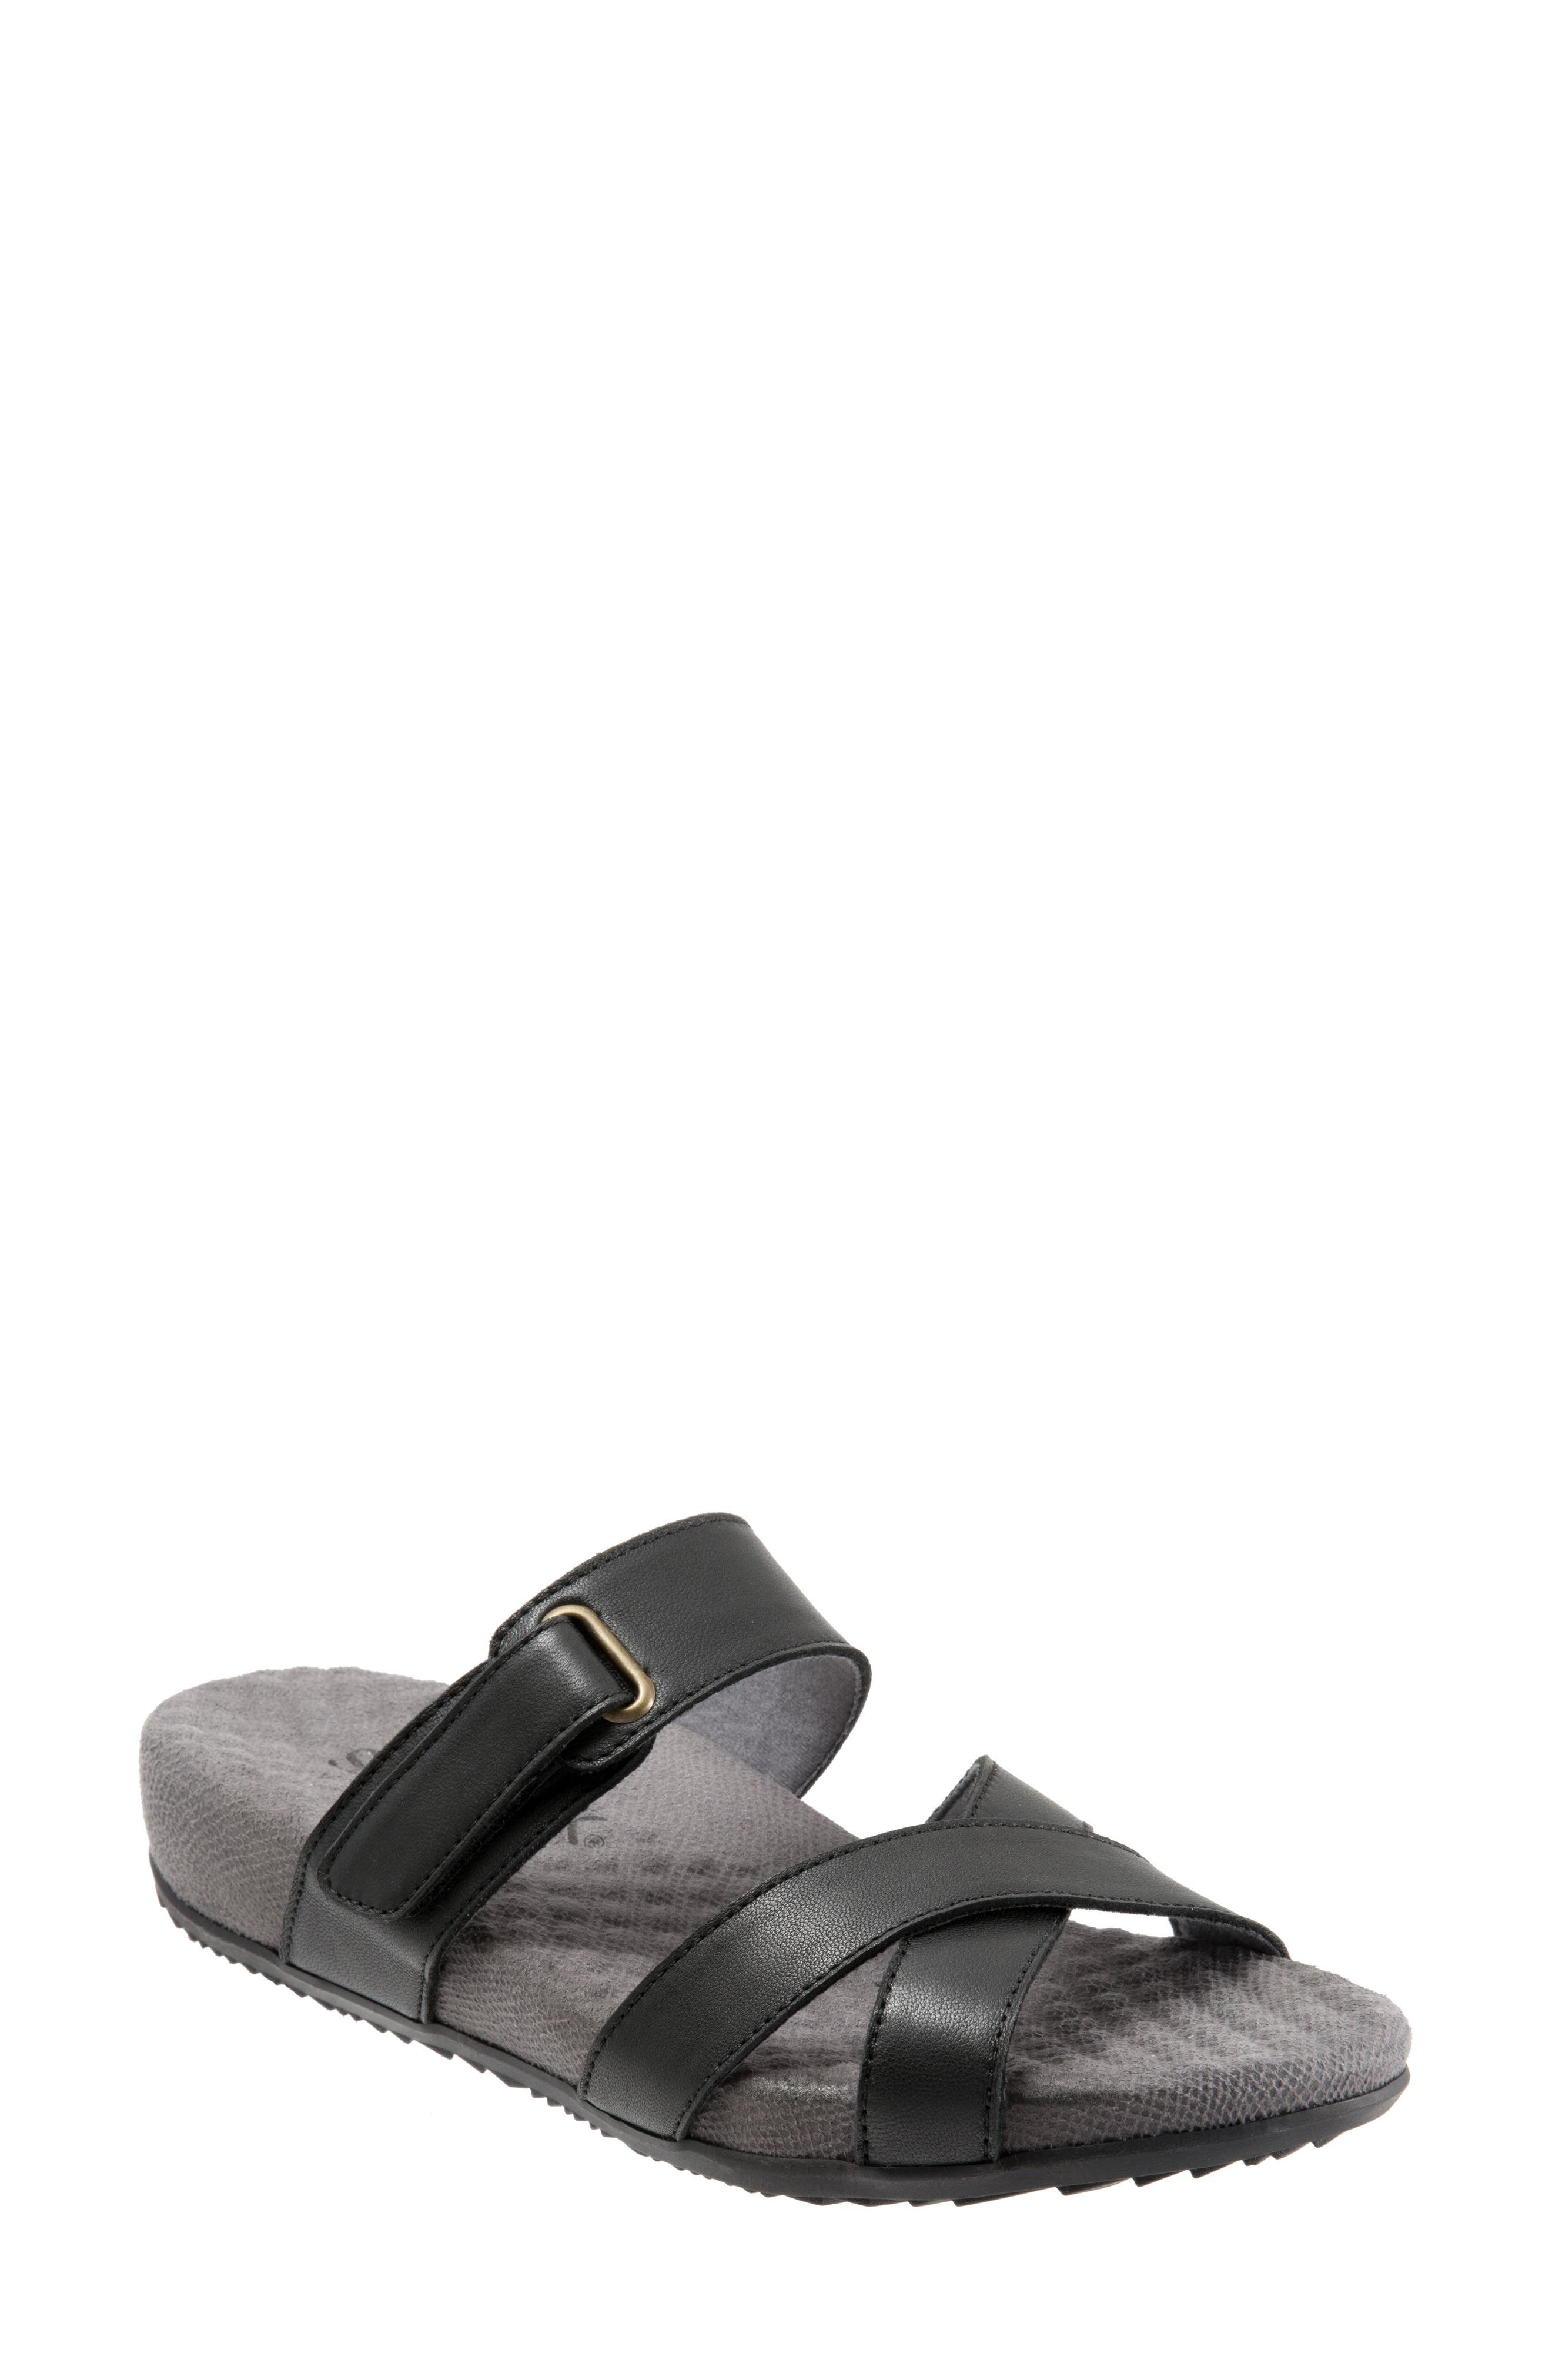 Brimley Sandal,                         Main,                         color, Black Leather